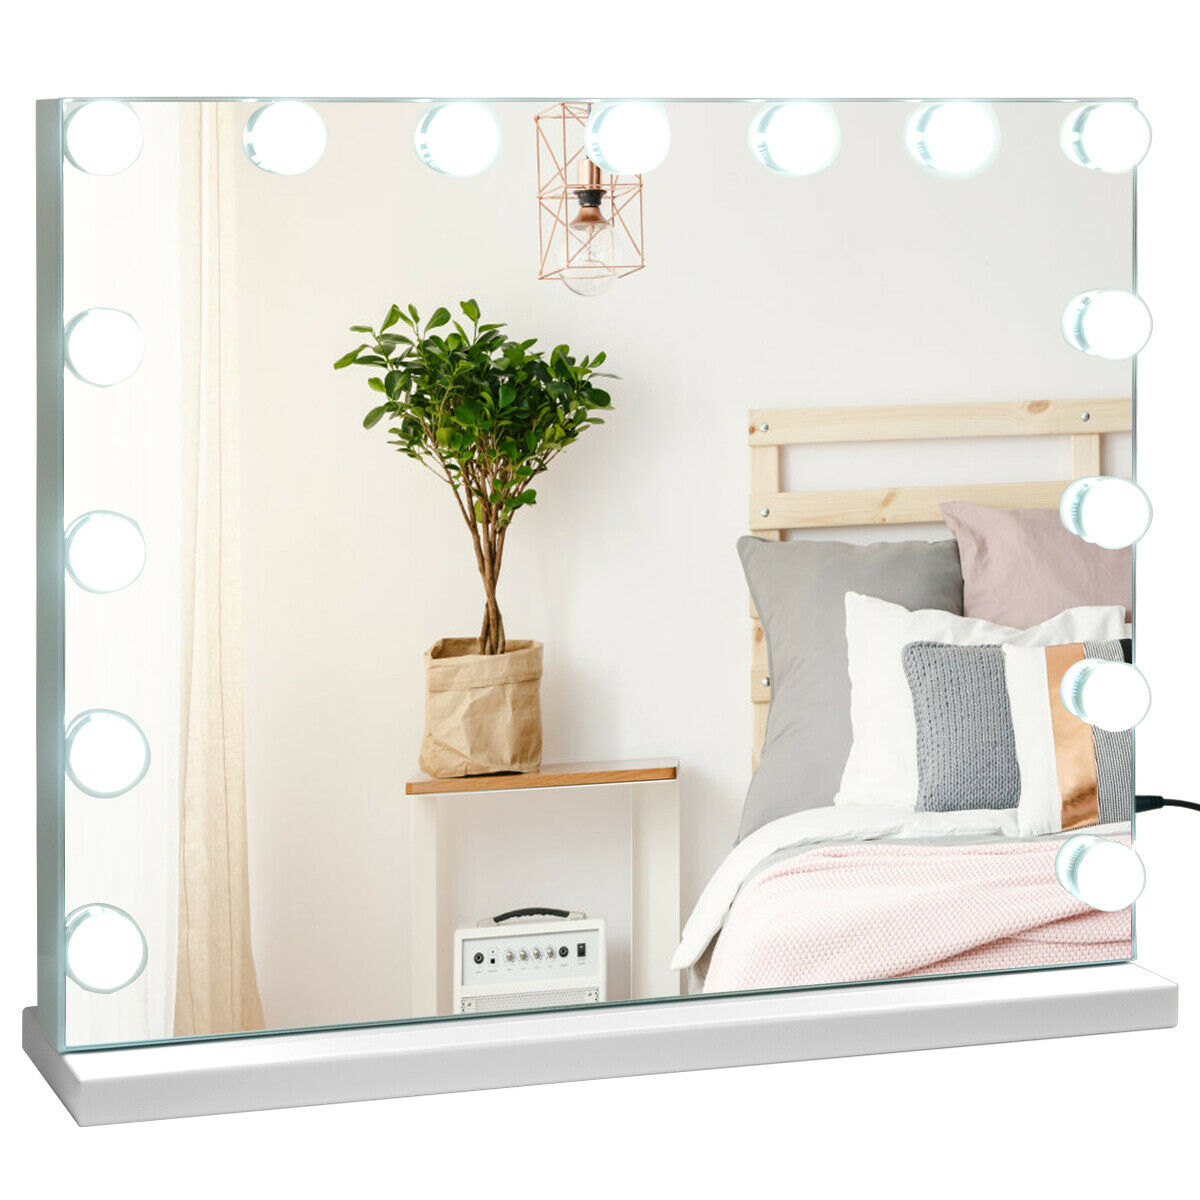 Vanity mirror with lights and Bluetooth speaker Hollywood Vanity Lighted Mirror Touch Control Magnification Bluetooth Speaker HB86948US